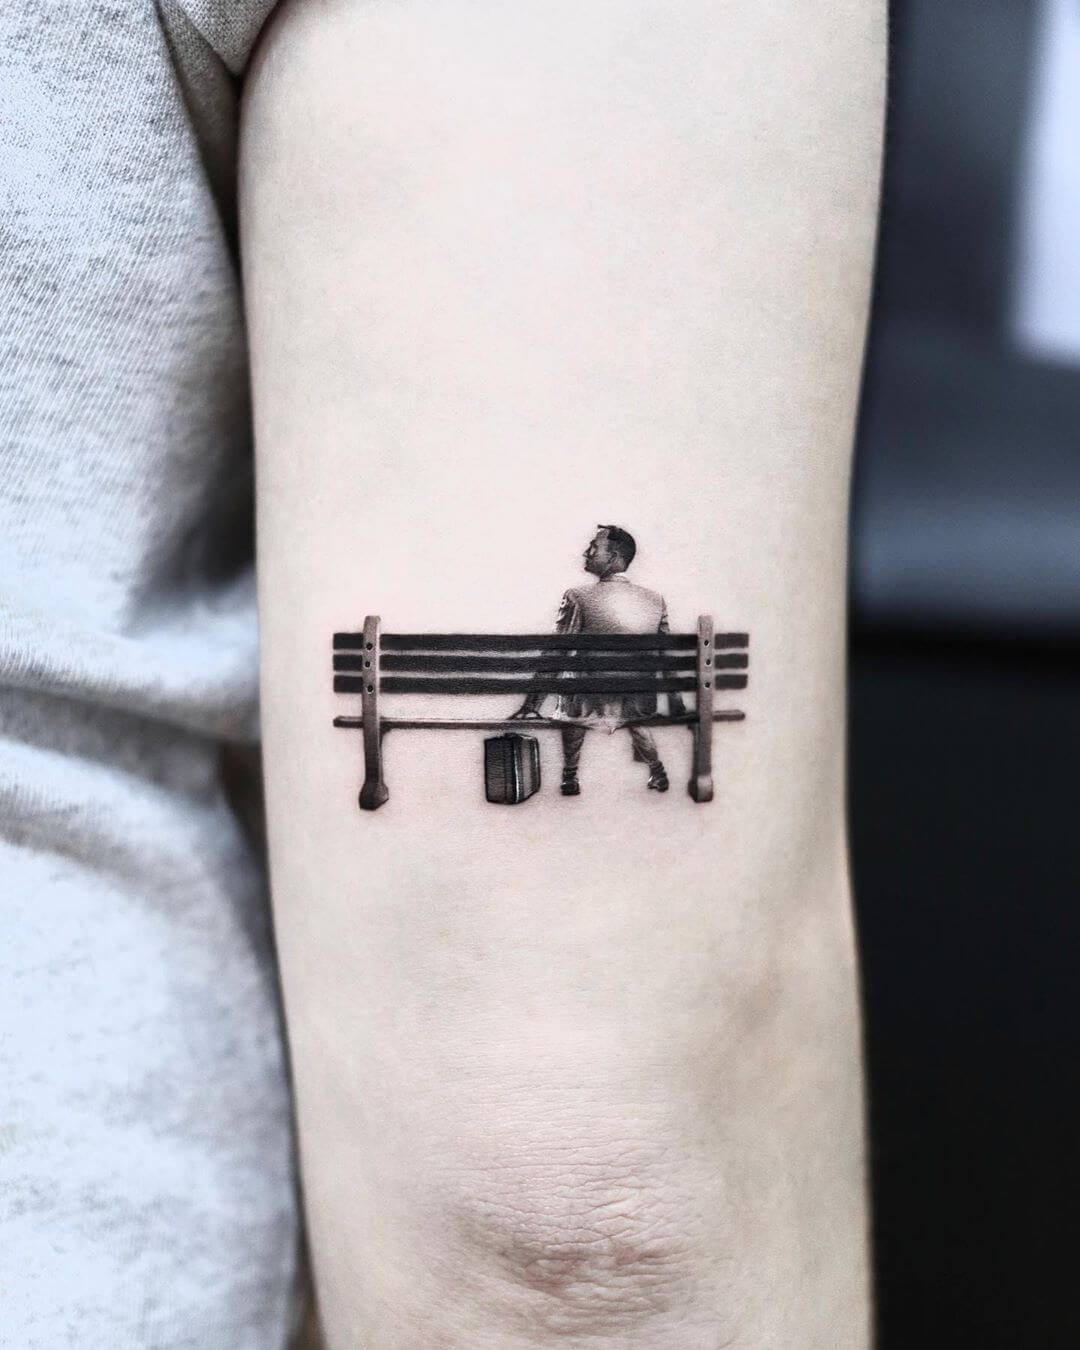 Forrest gump tattoo by Yeono